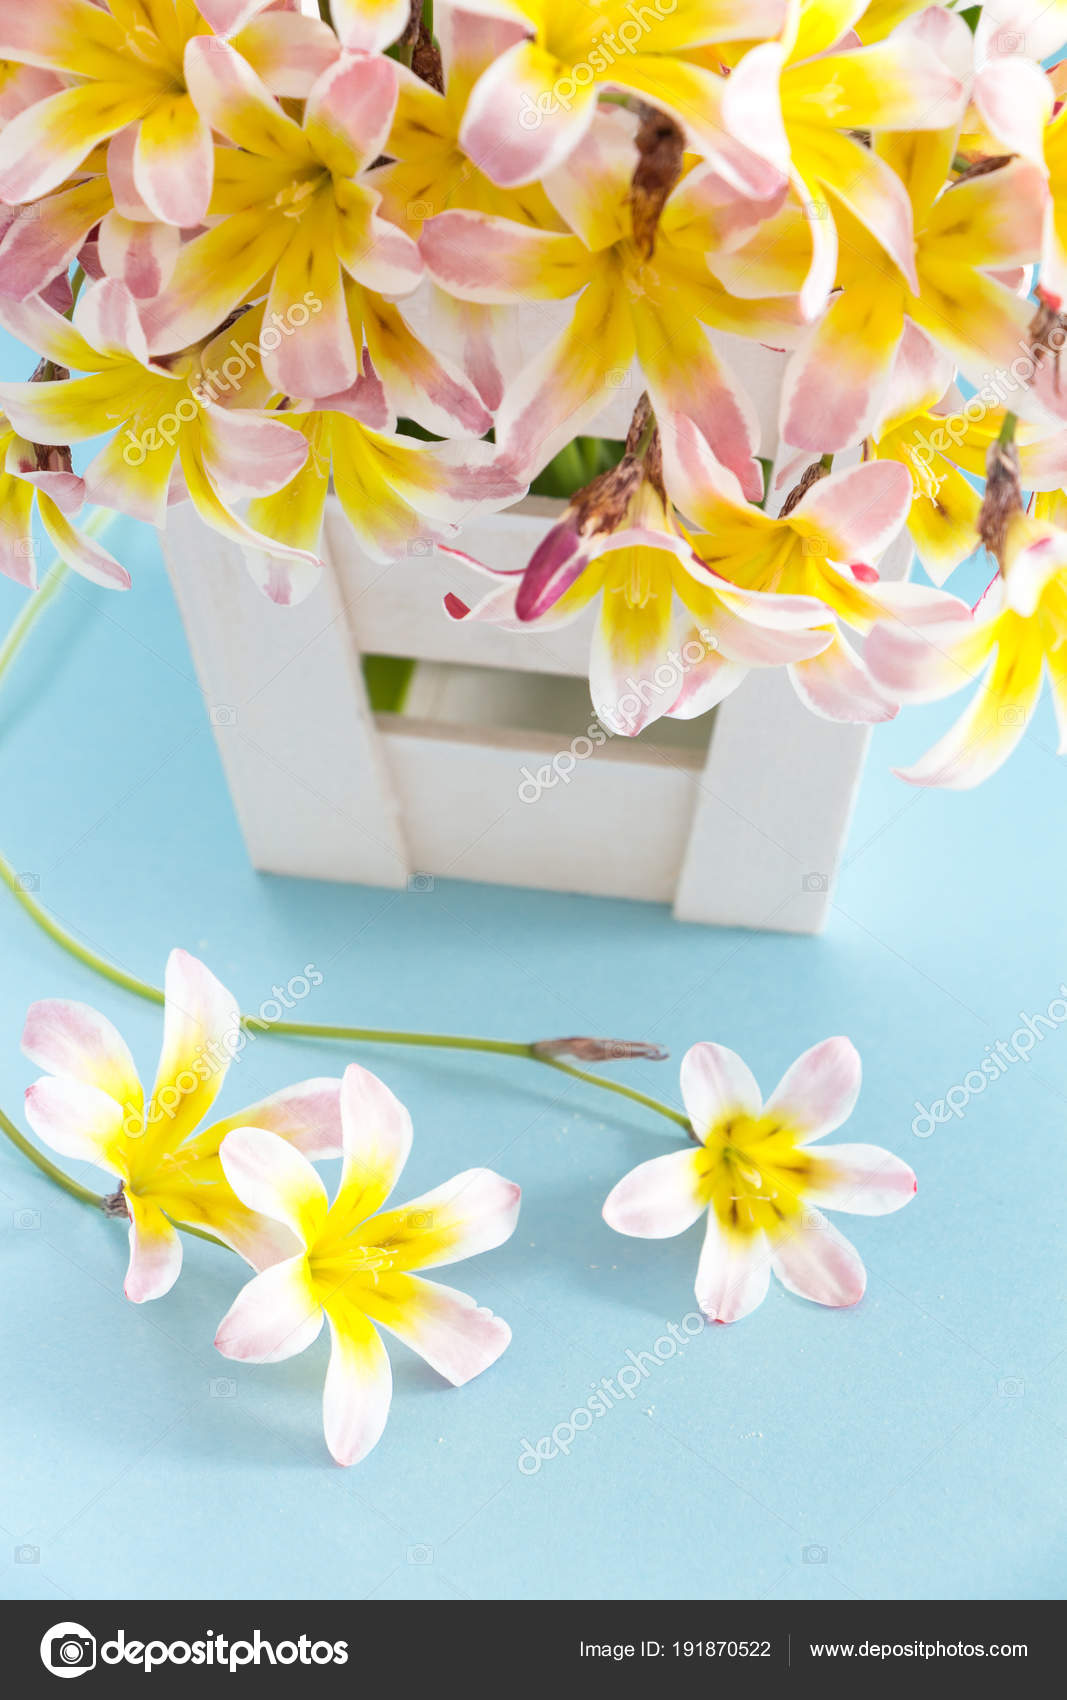 Colorful Spring Flower Bouquet In White Wooden Container And On